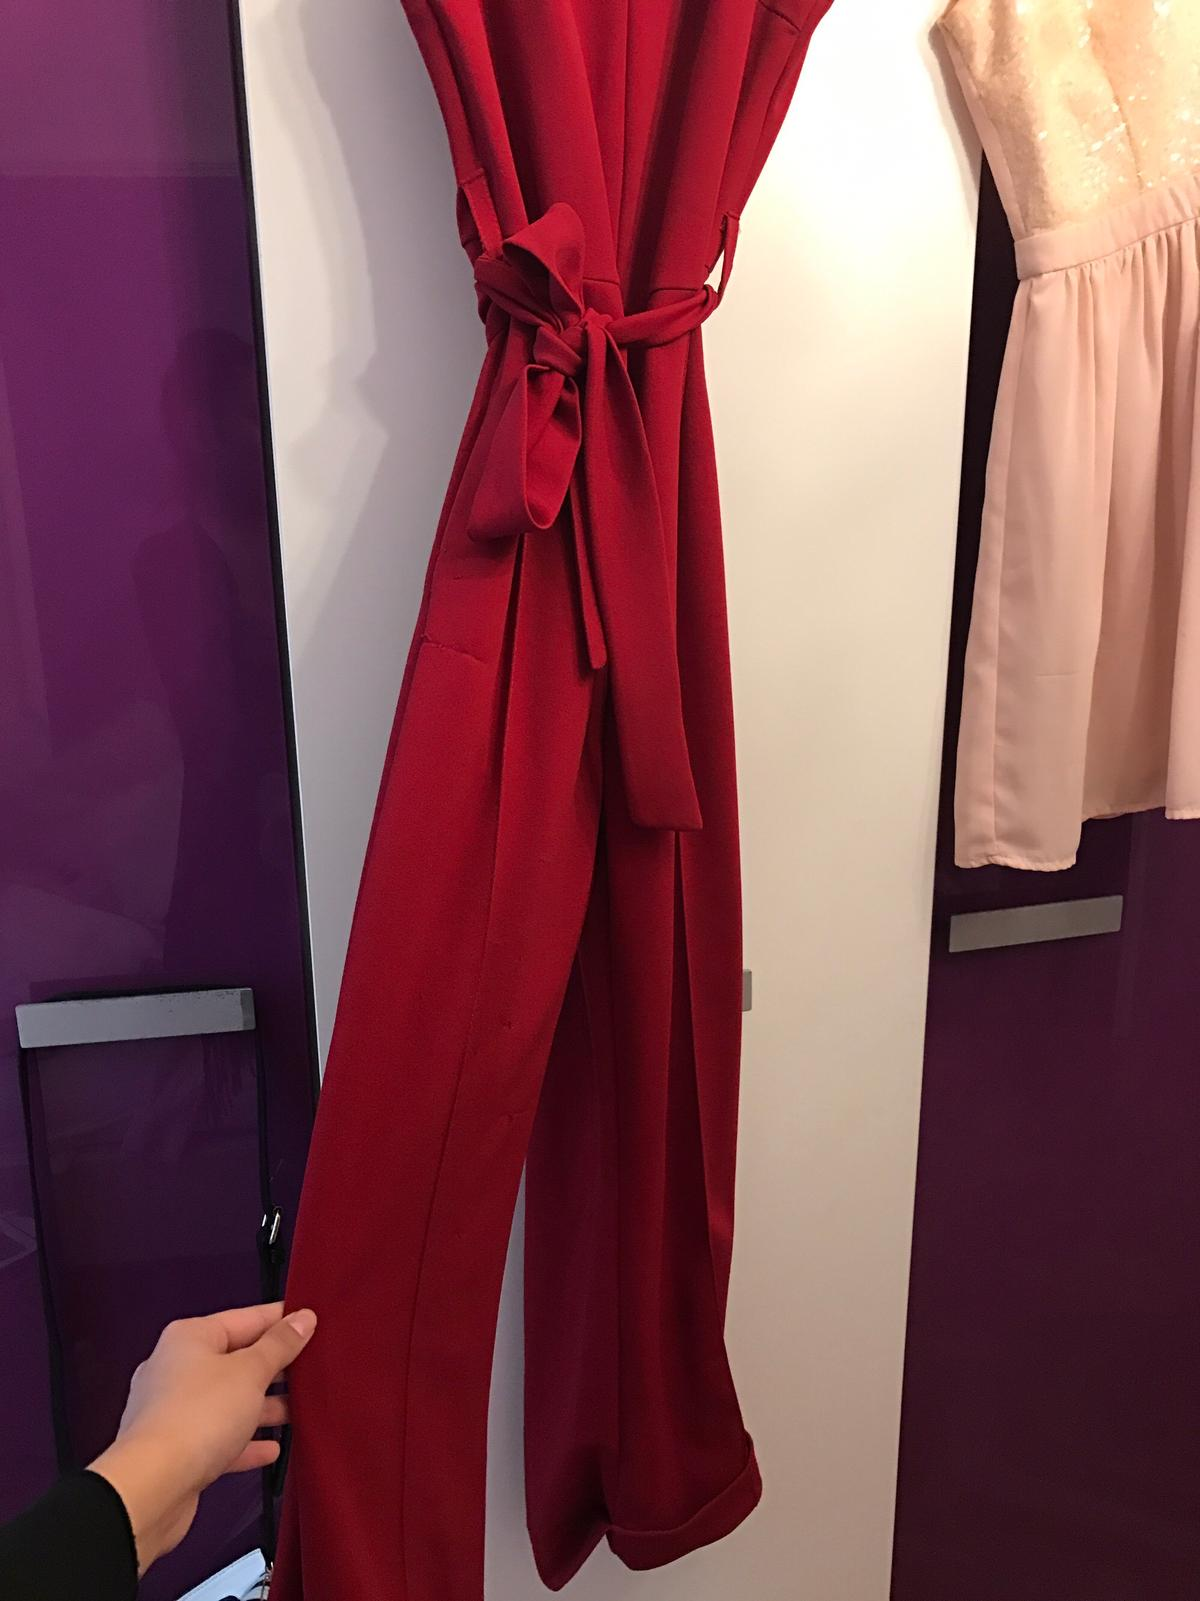 finest selection 8cb5b 33e9c Roter Overall in 1030 Wien für € 20,00 kaufen - Shpock